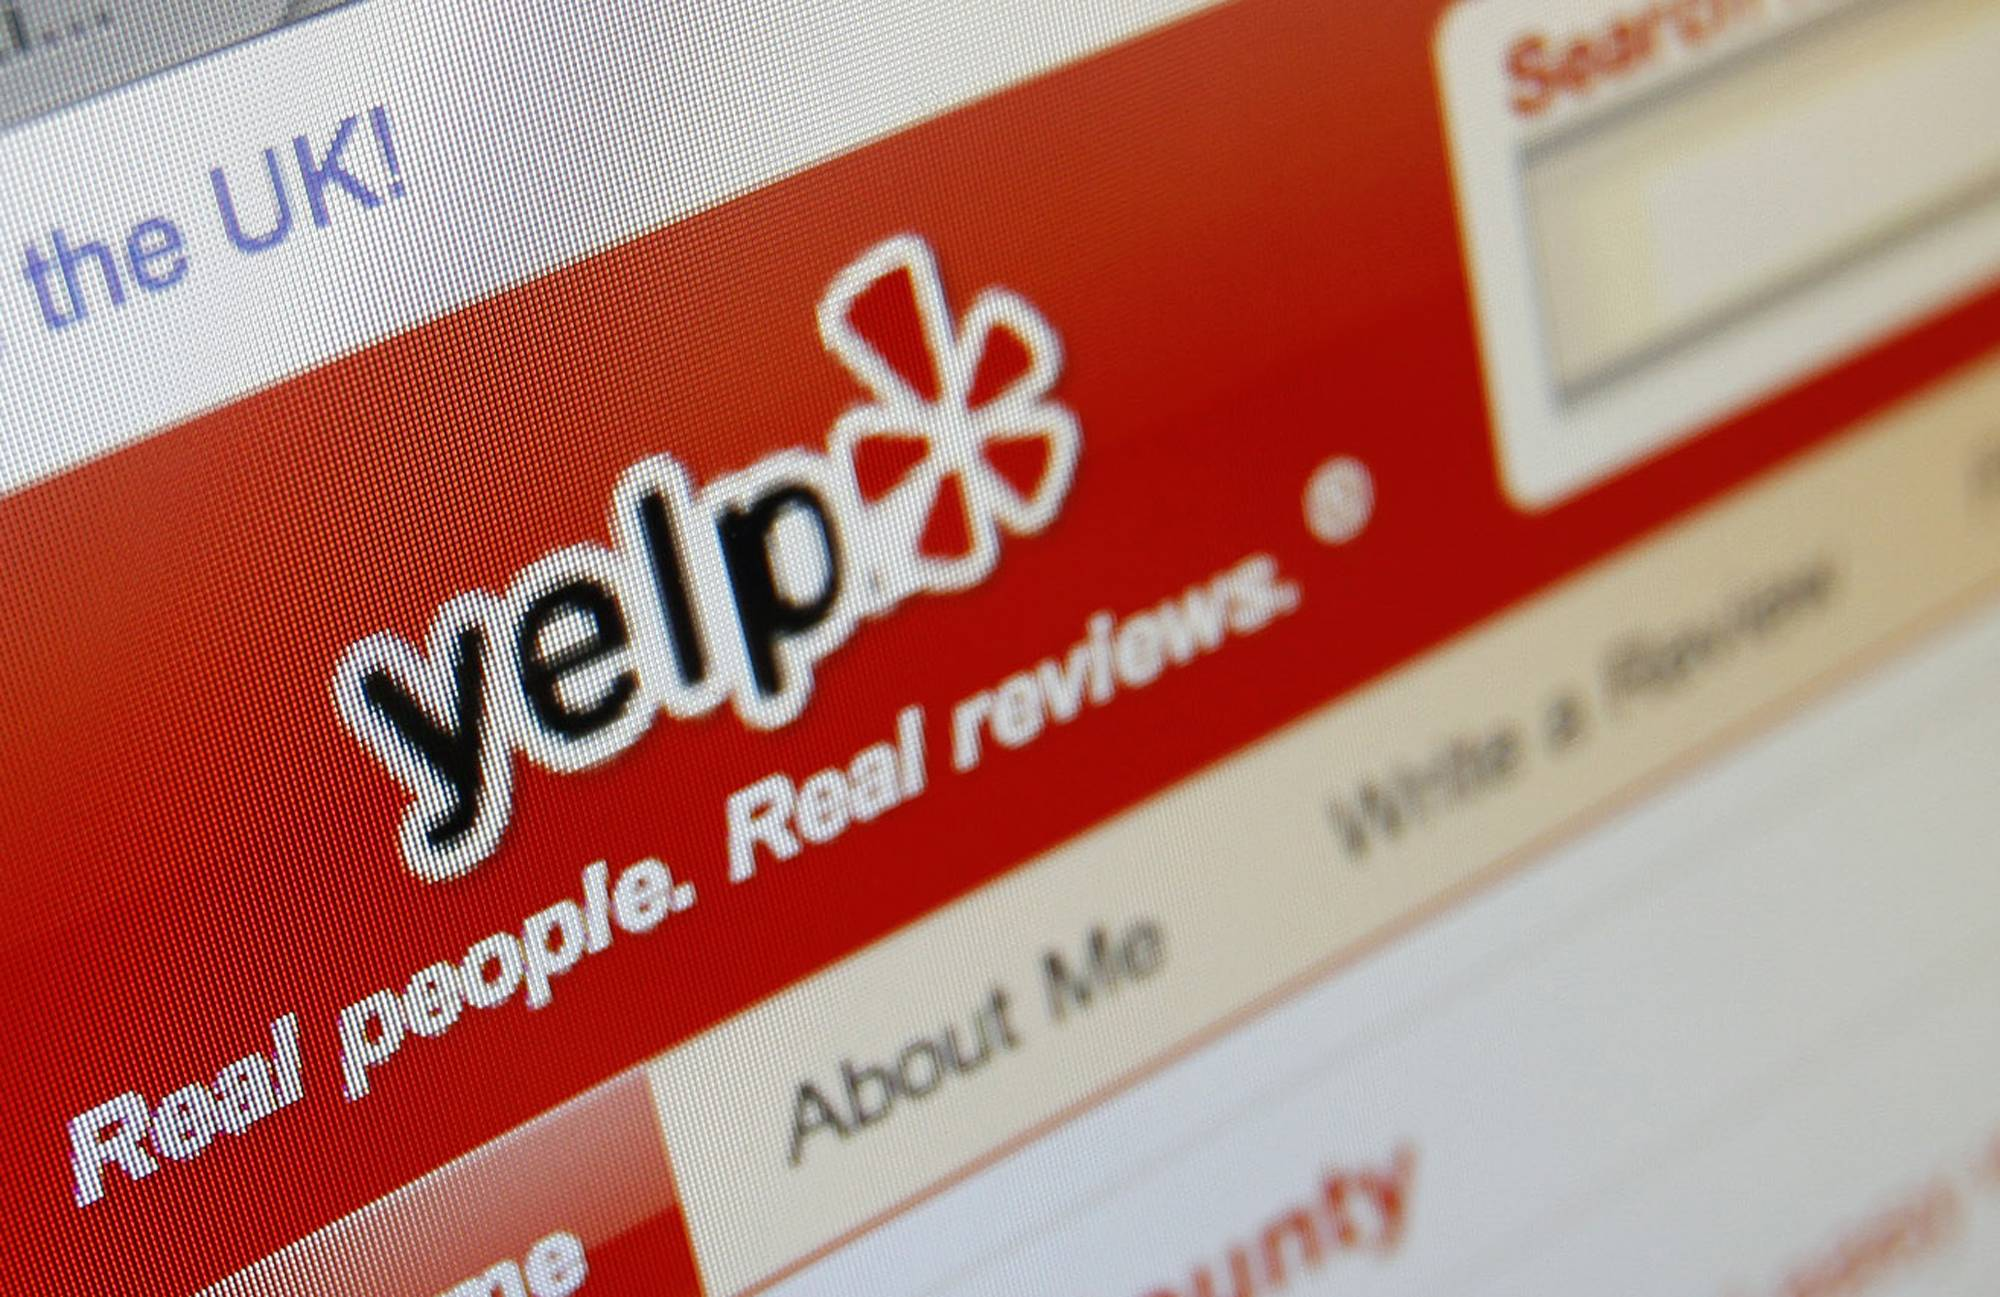 New York City is using a novel way to spot food-poisoning cases — reading Yelp restaurant reviews. Health officials found three, unreported outbreaks by sifting through hundreds of thousands of comments on the popular website.